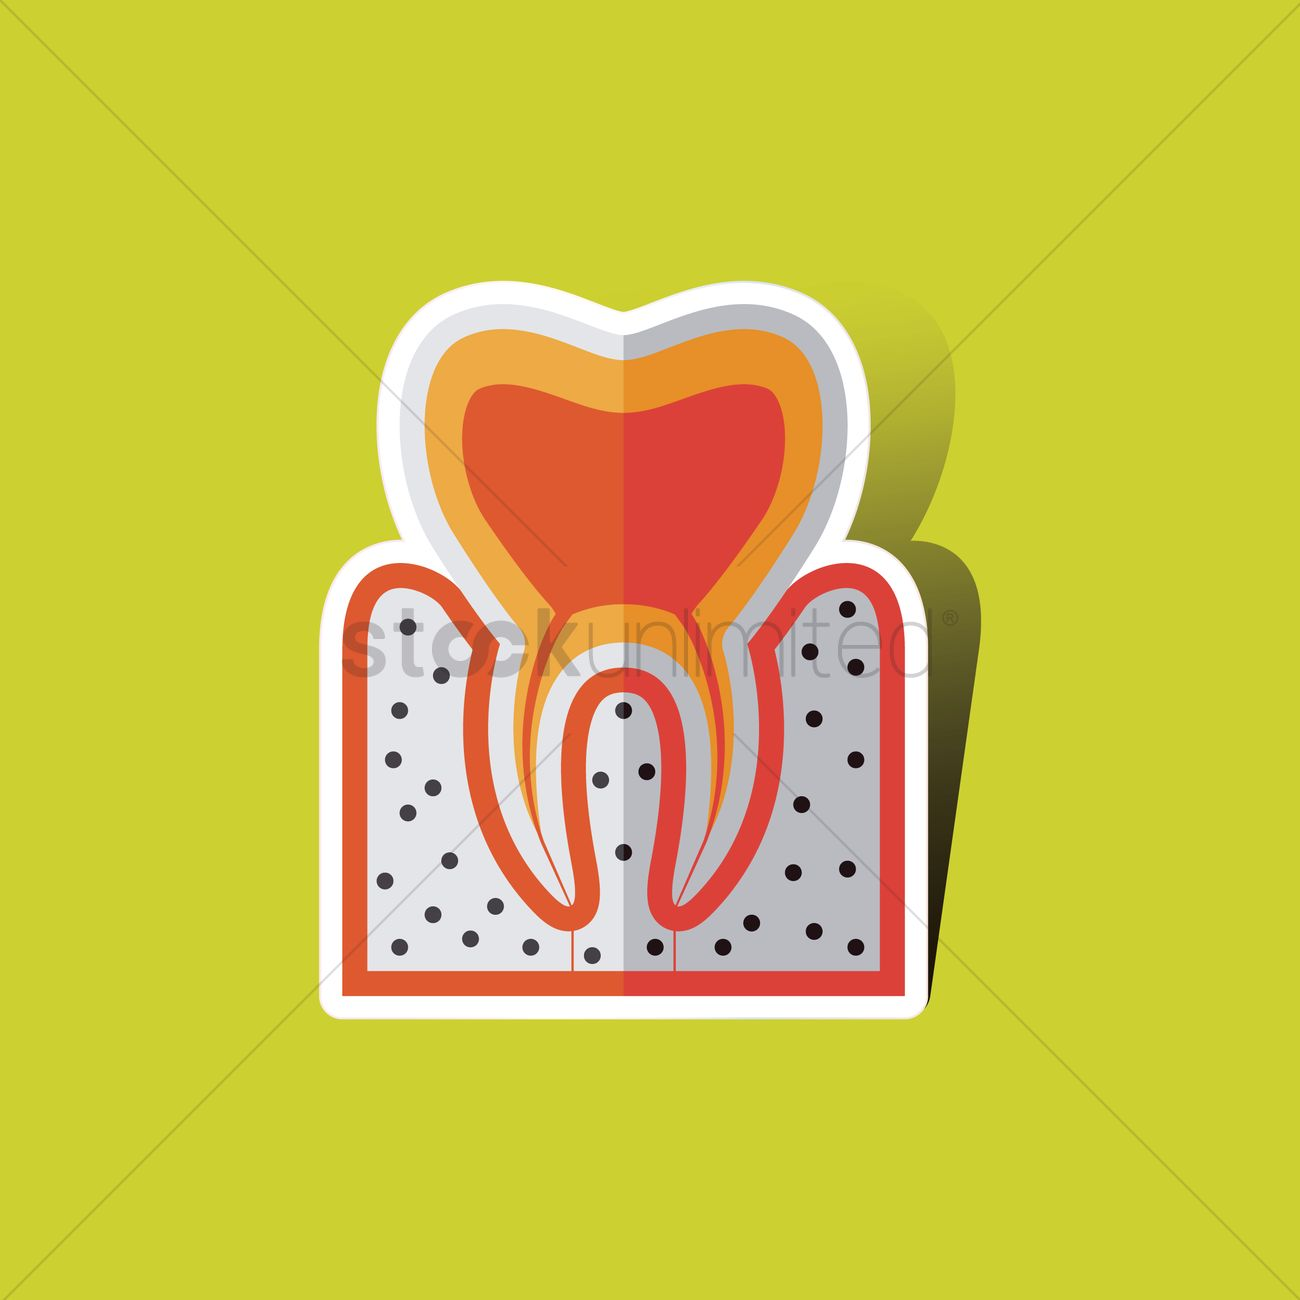 Free Tooth anatomy Vector Image - 1265299   StockUnlimited